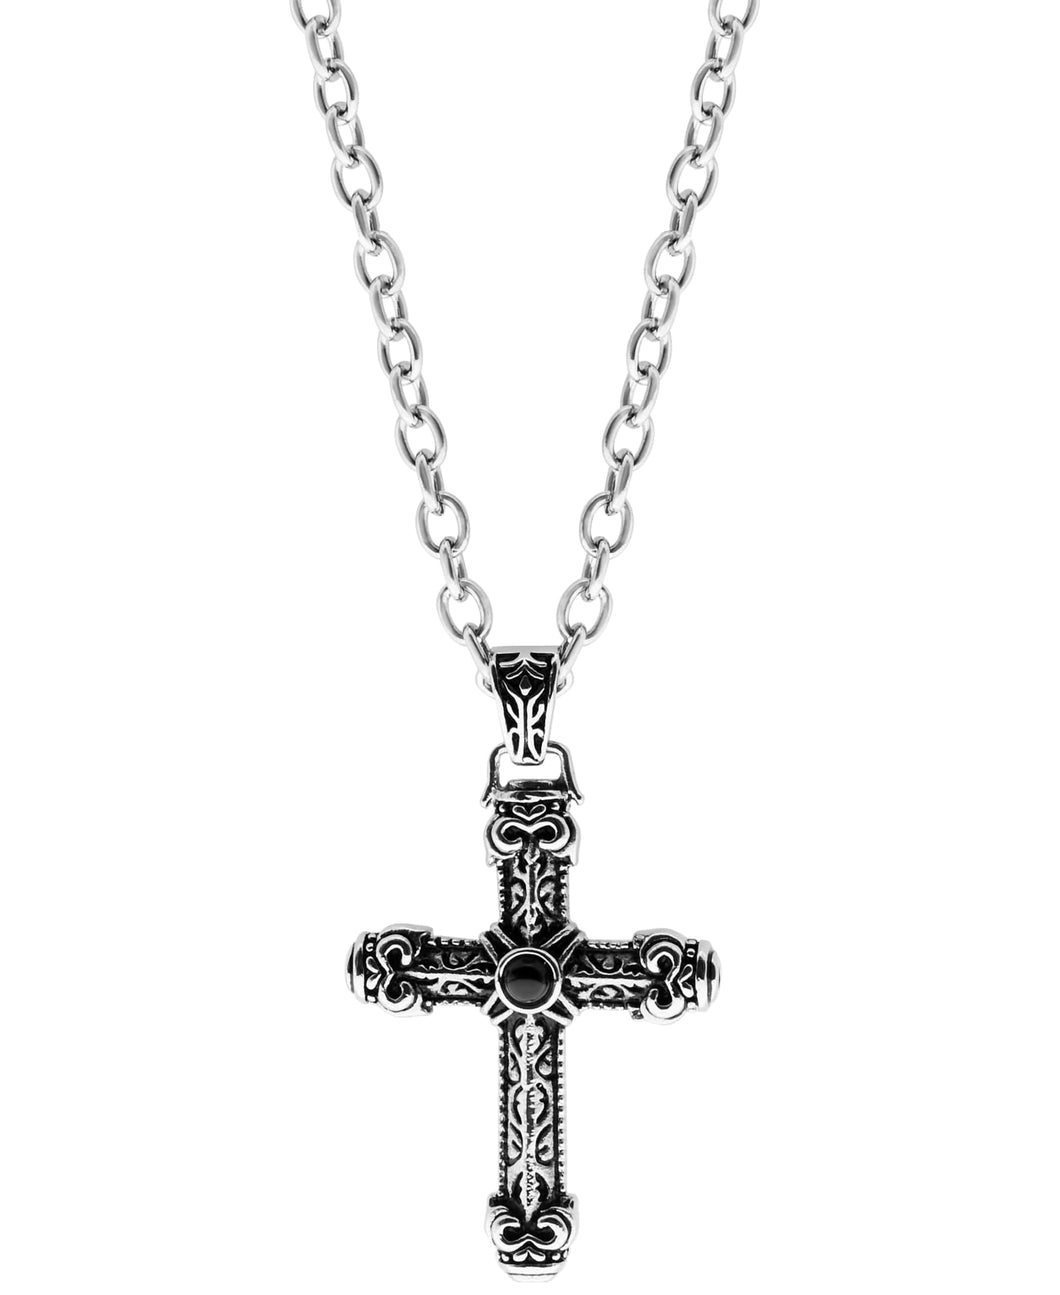 Sutton Stainless Steel Antique Cross Pendant Necklace